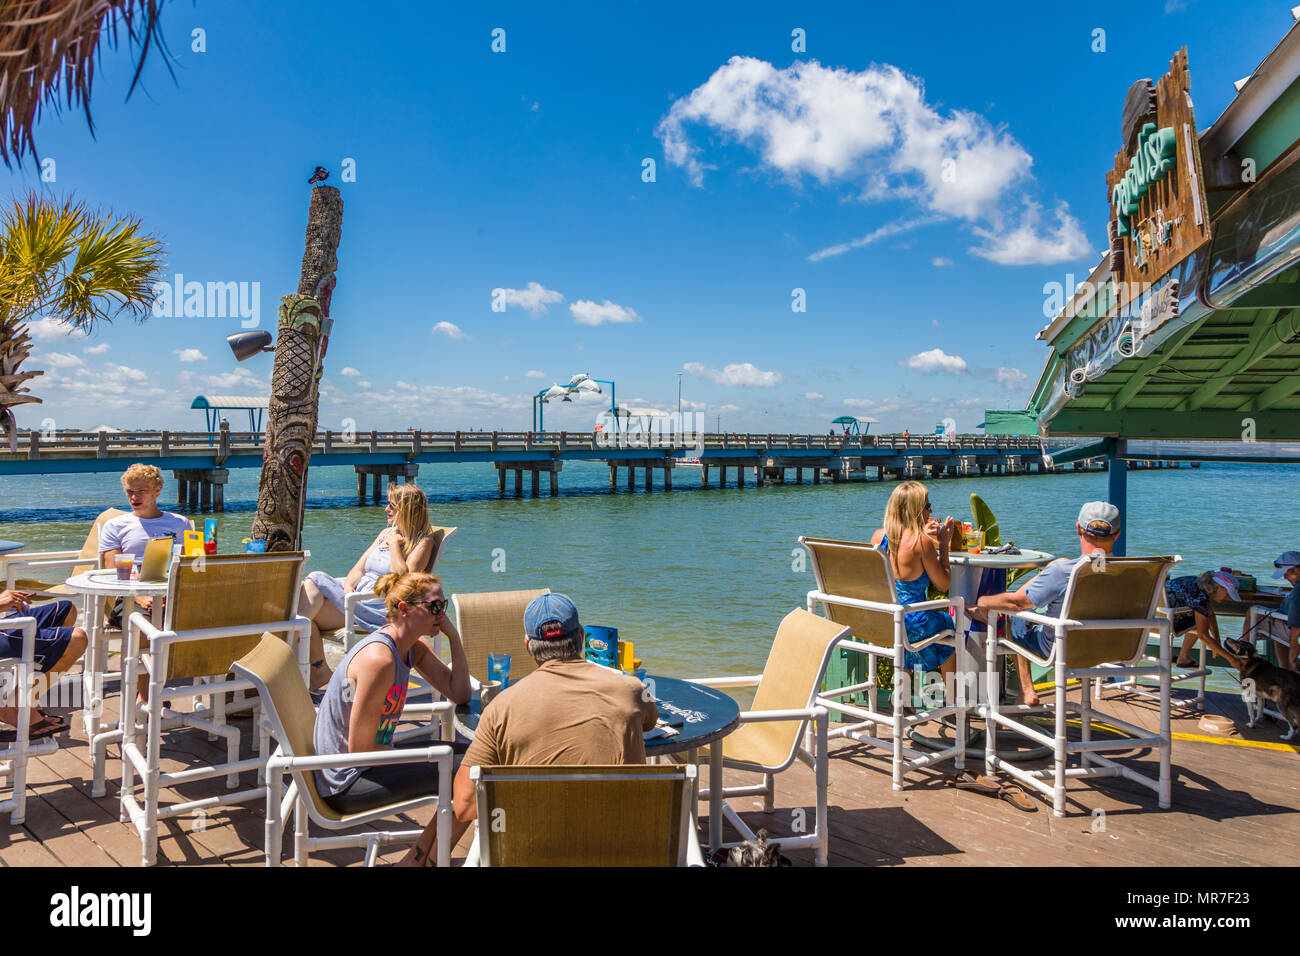 People enjoying summer day at Beaches at Vilano waterfront outdoor restaurant cafe in Vilano Beach near St Augustine Florida - Stock Image